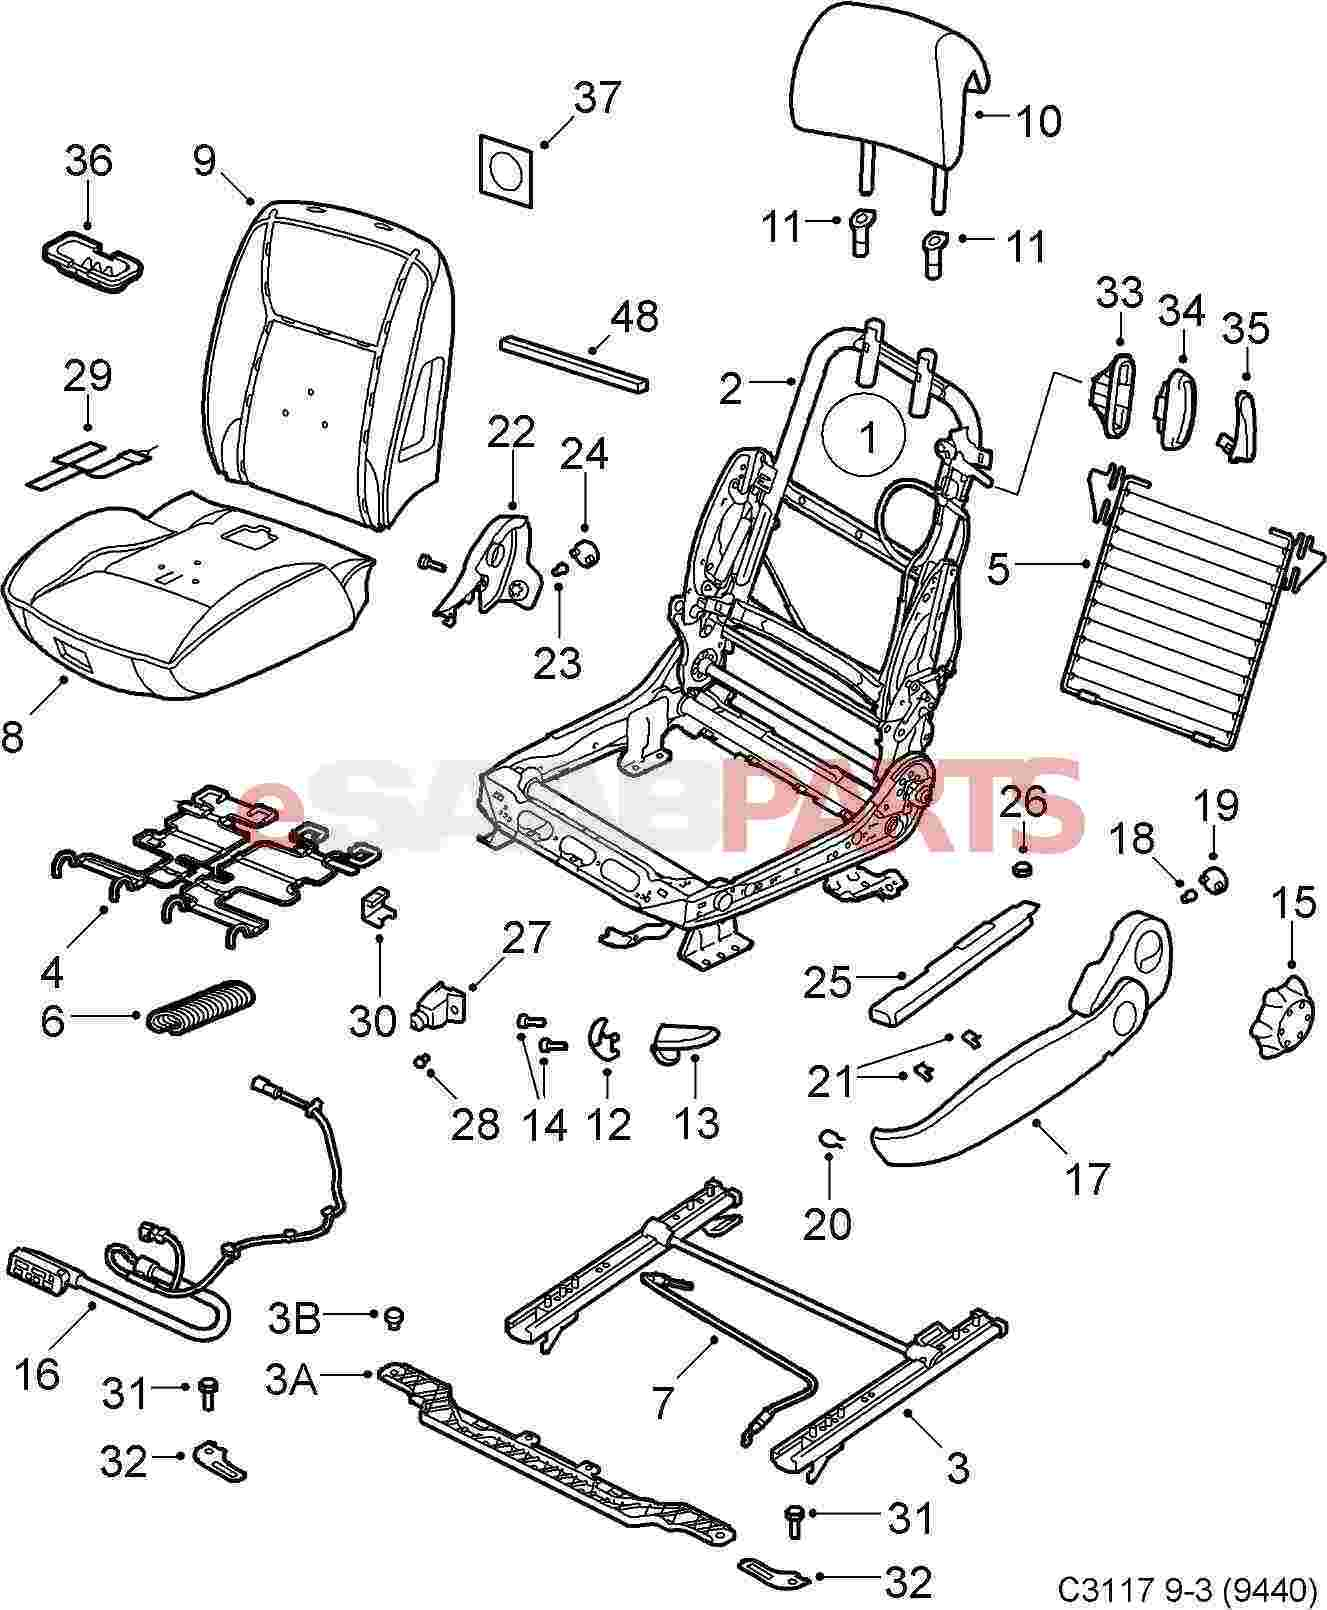 P38 Seat Wiring Diagram